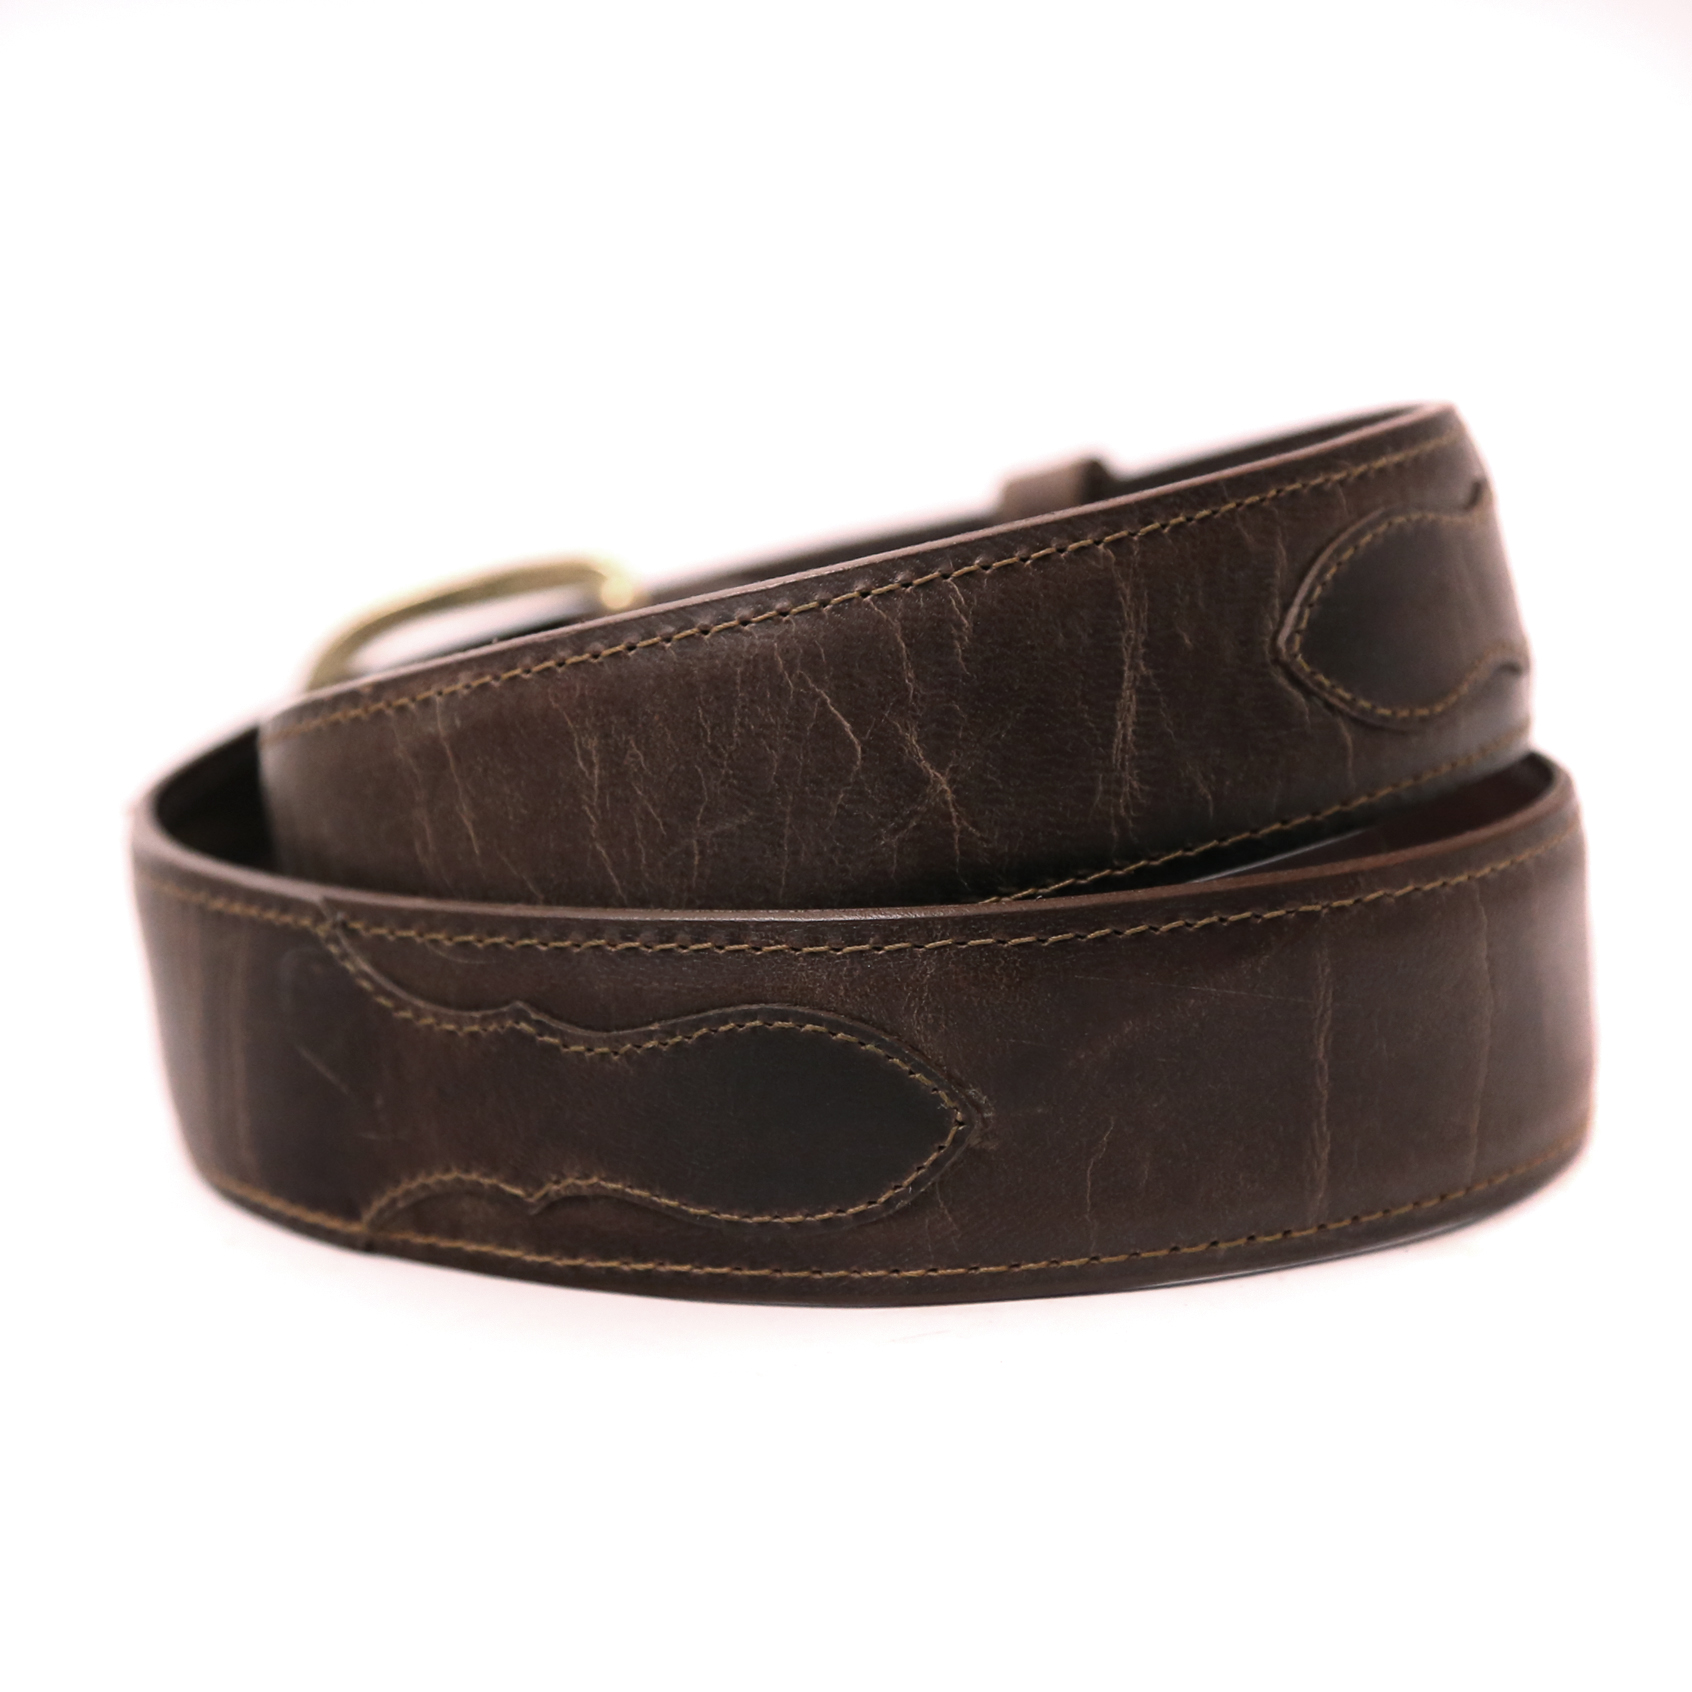 Father's Day Belts from Space Cowboy Boots